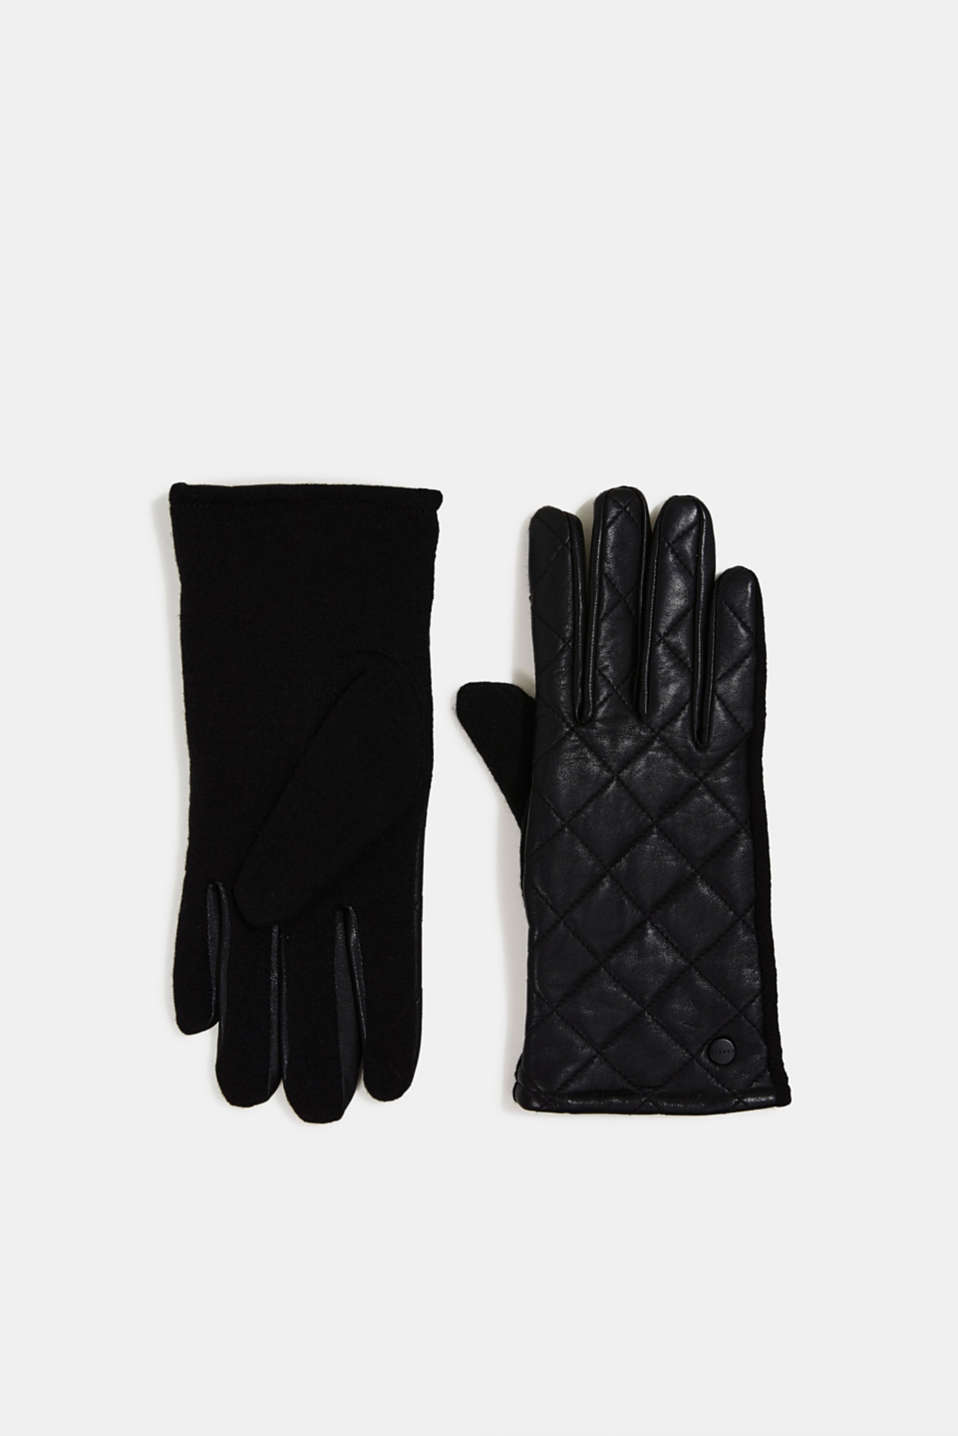 Esprit - Gloves made of lamb leather and blended wool